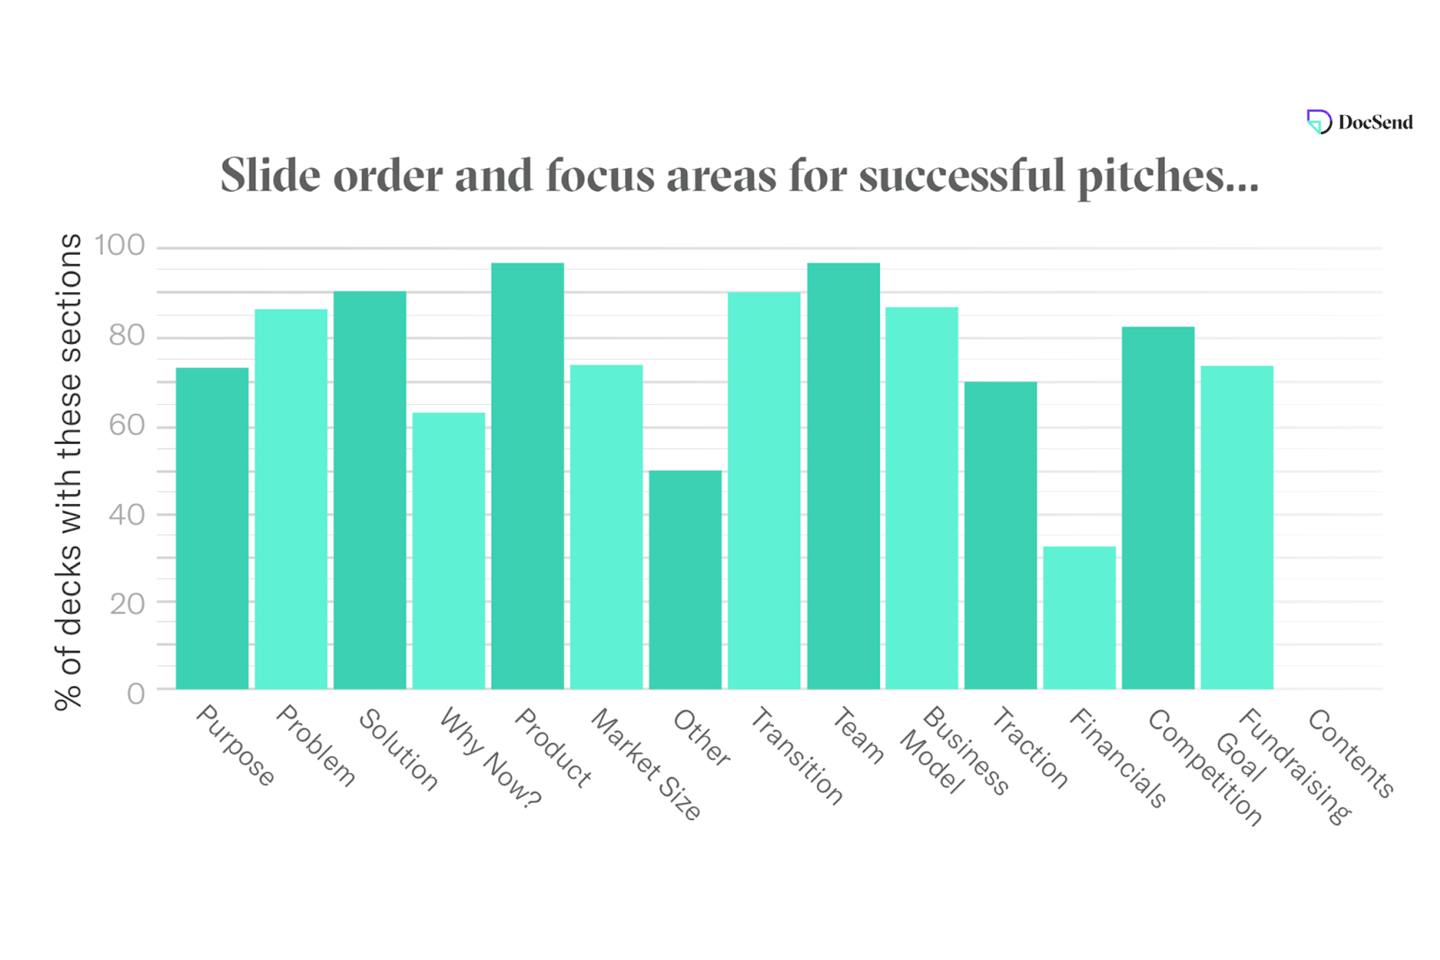 Bar graph showing slide order and focus areas for successful pitches